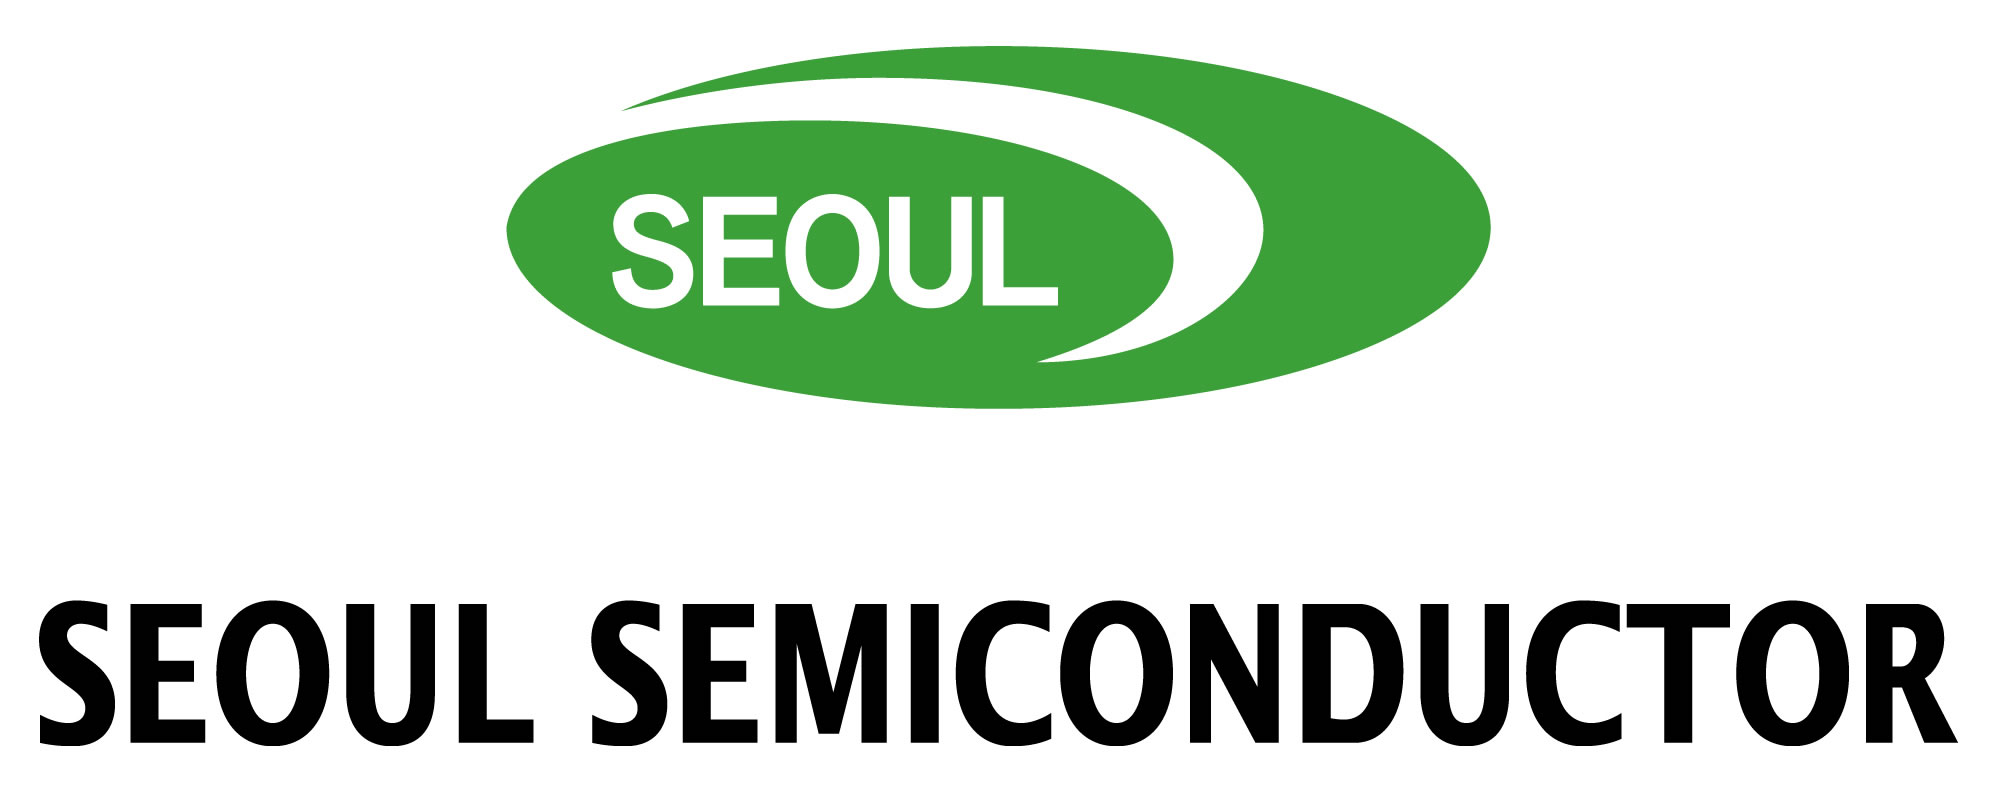 High Power Led Lens Seoul Semiconductor Focus Shift On